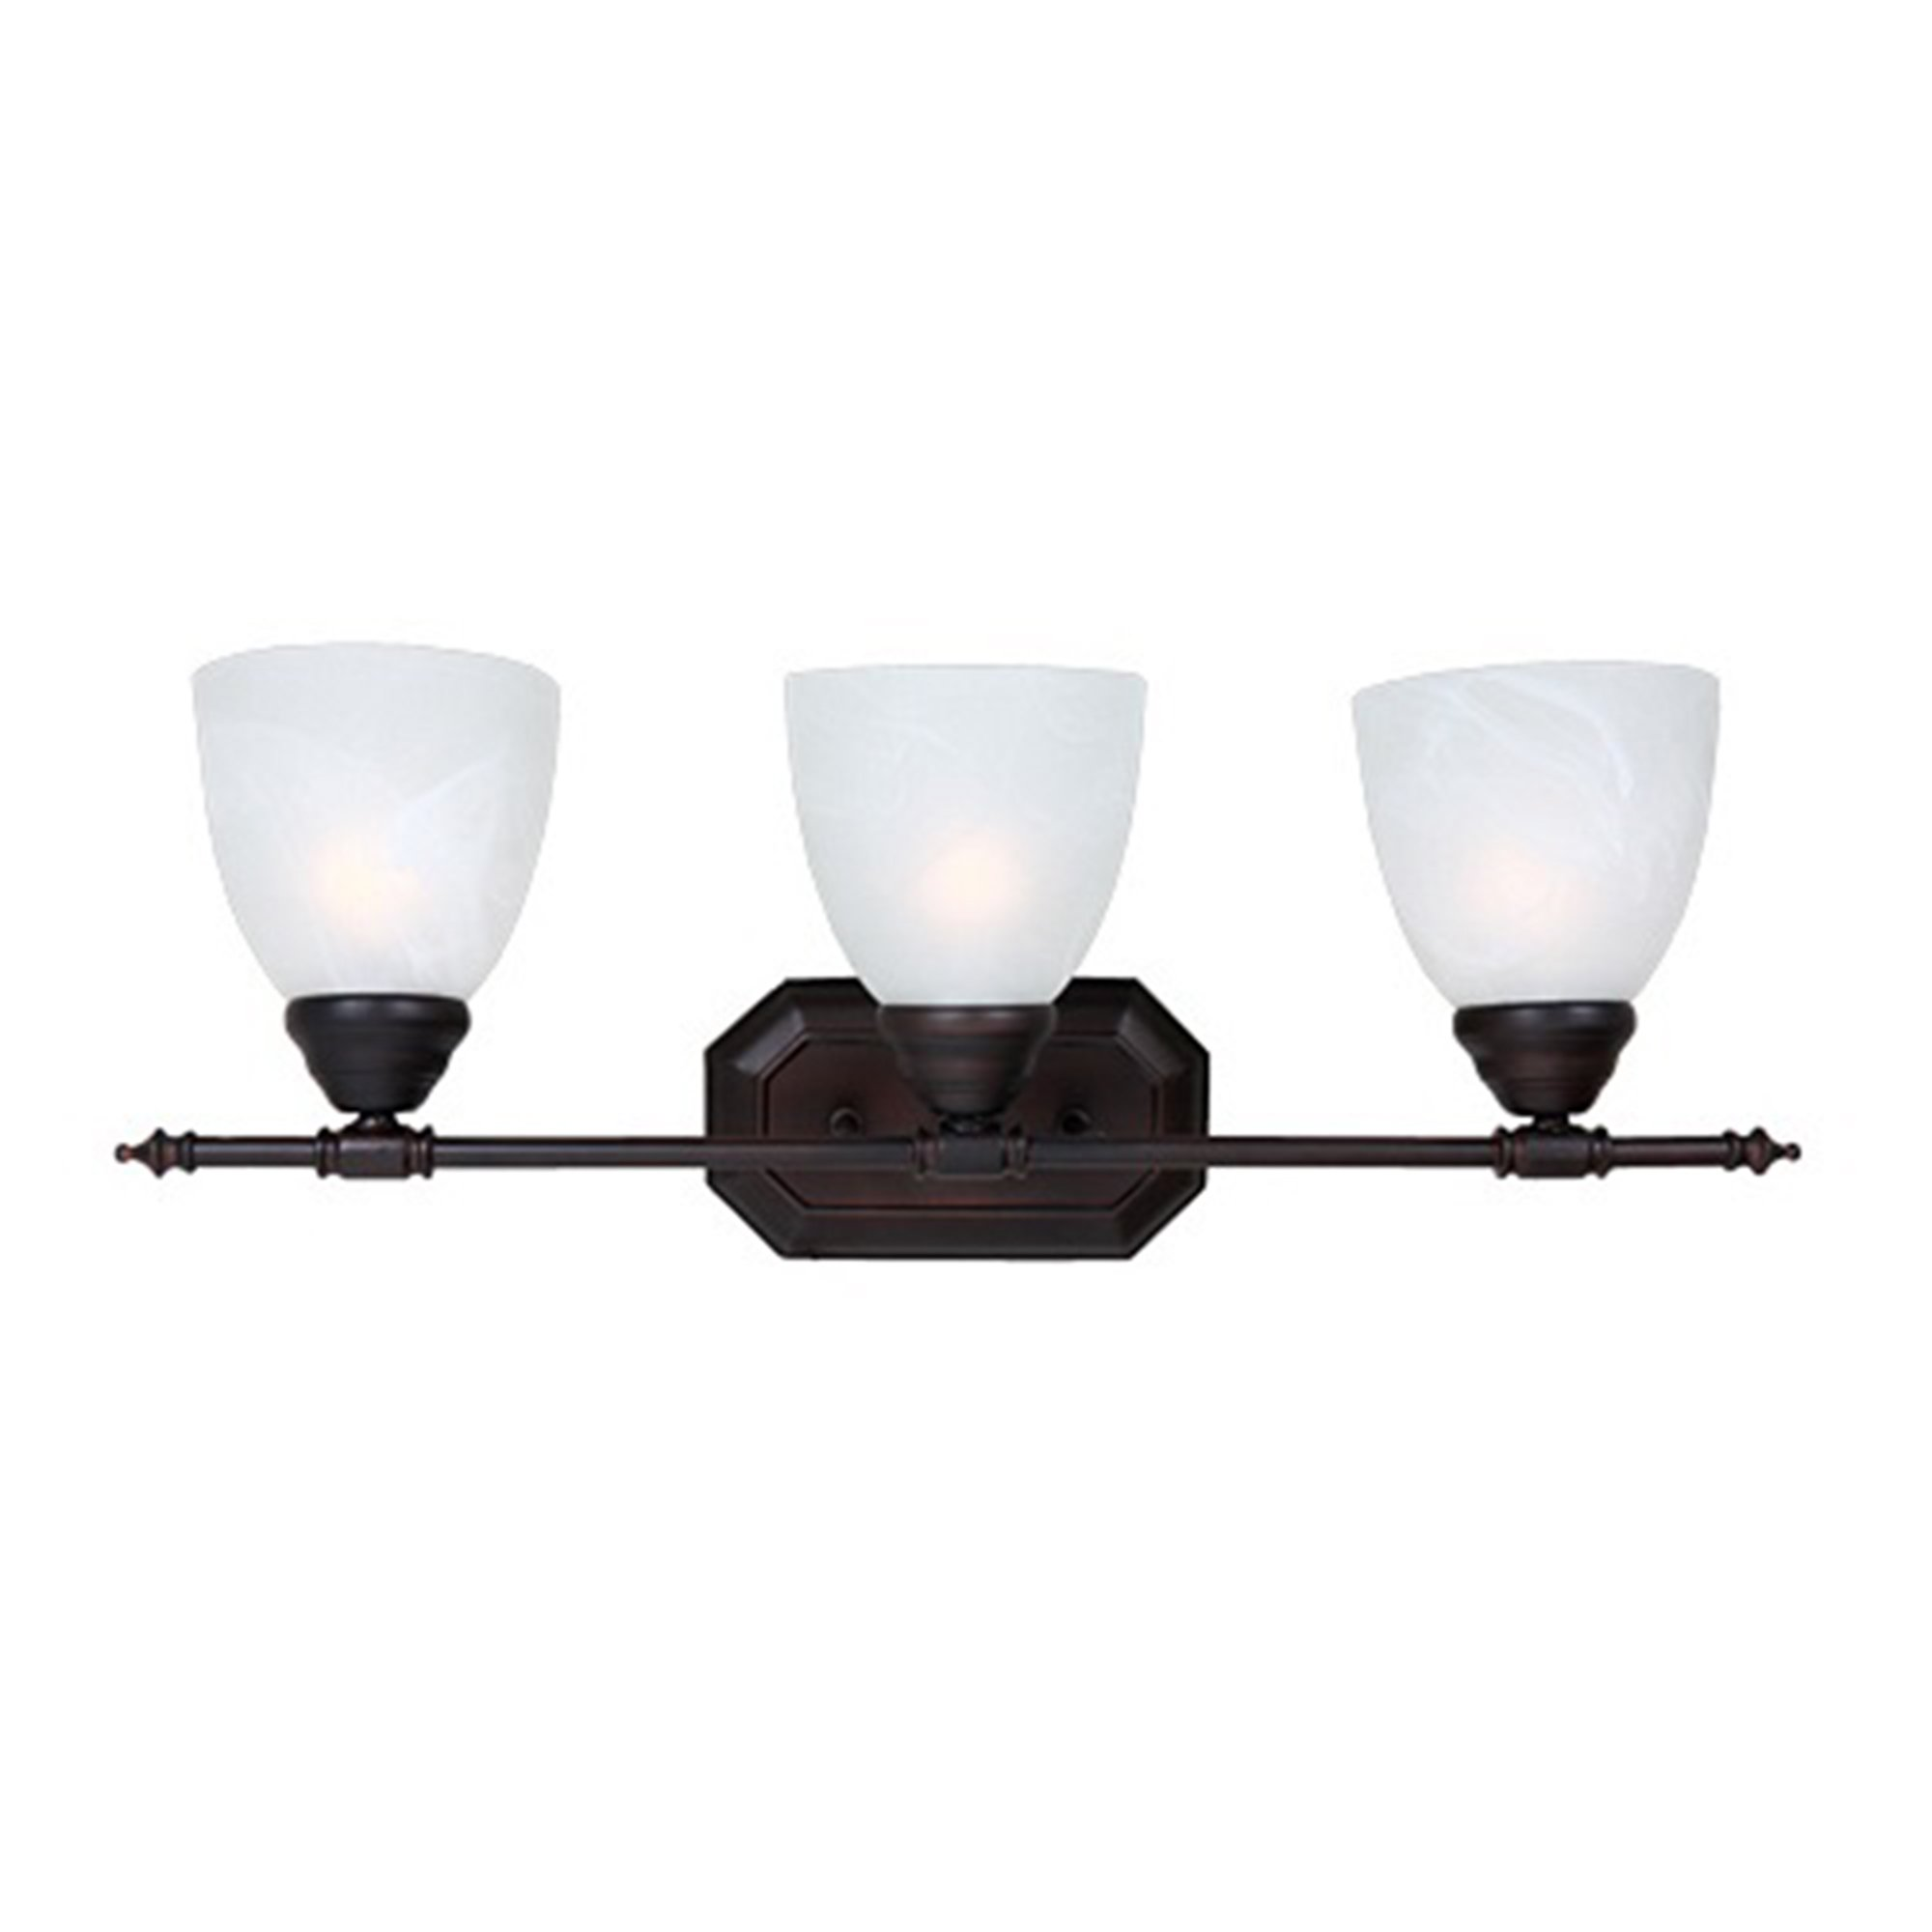 Y Decor L6433-3ORB-W Modern, Transitional, Traditional 3 Light Bathroom Vanity Fixture Oil Rubbed Bronze with White Glass By, Oil Rubbed Bronze, Brown, White